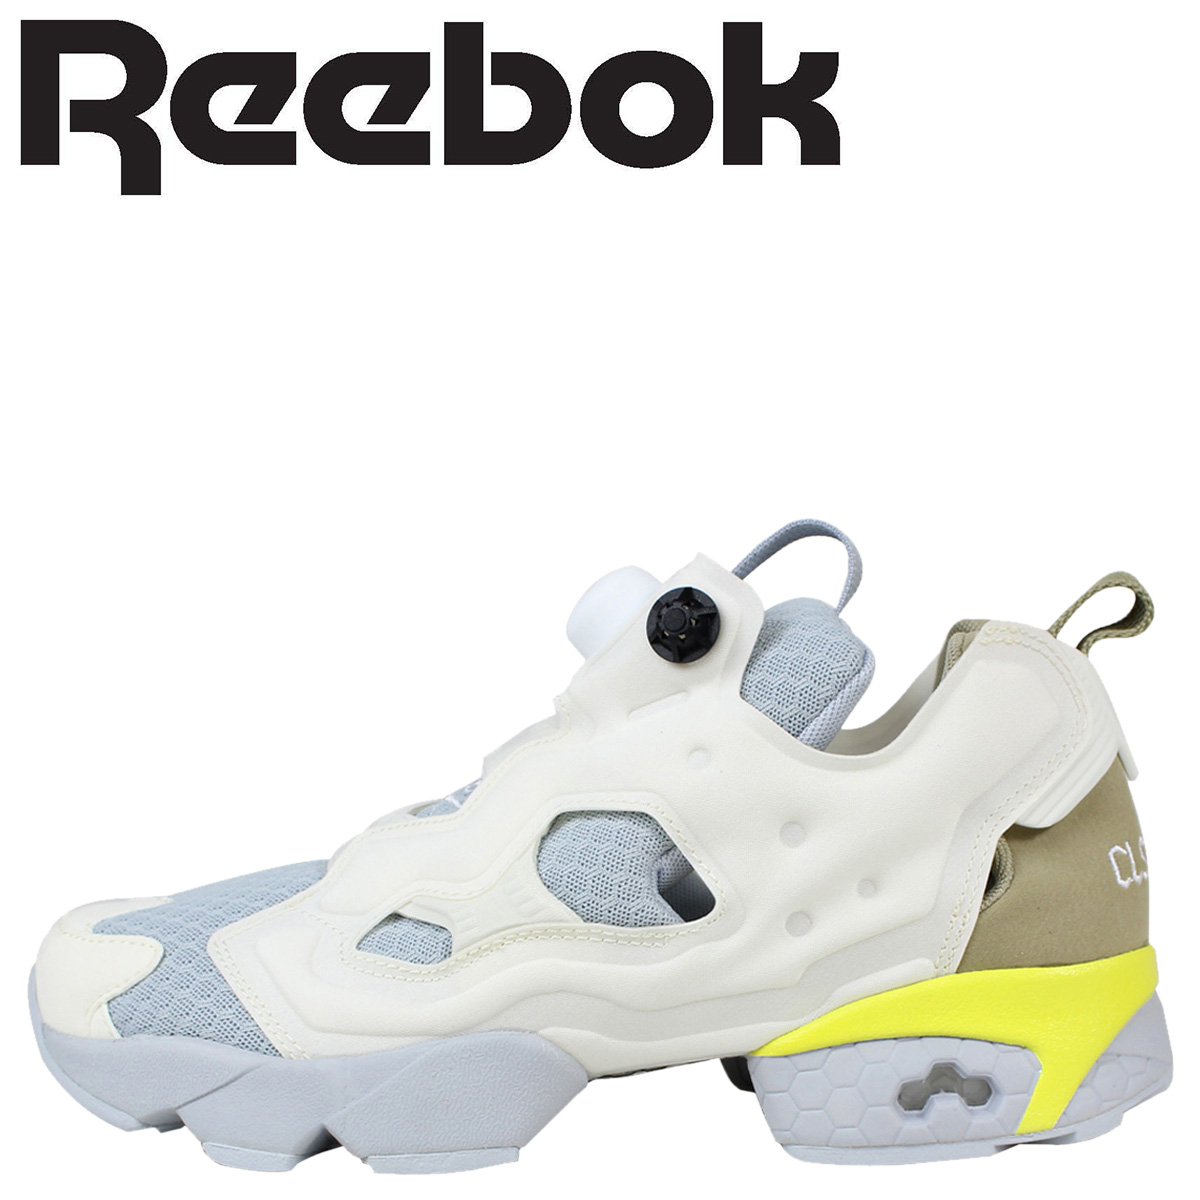 a8d865b8 Reebok Reebok pump fury sneakers INSTAPUMP FURY CLSHX AR0366 men's women's  shoes white [8/ ...